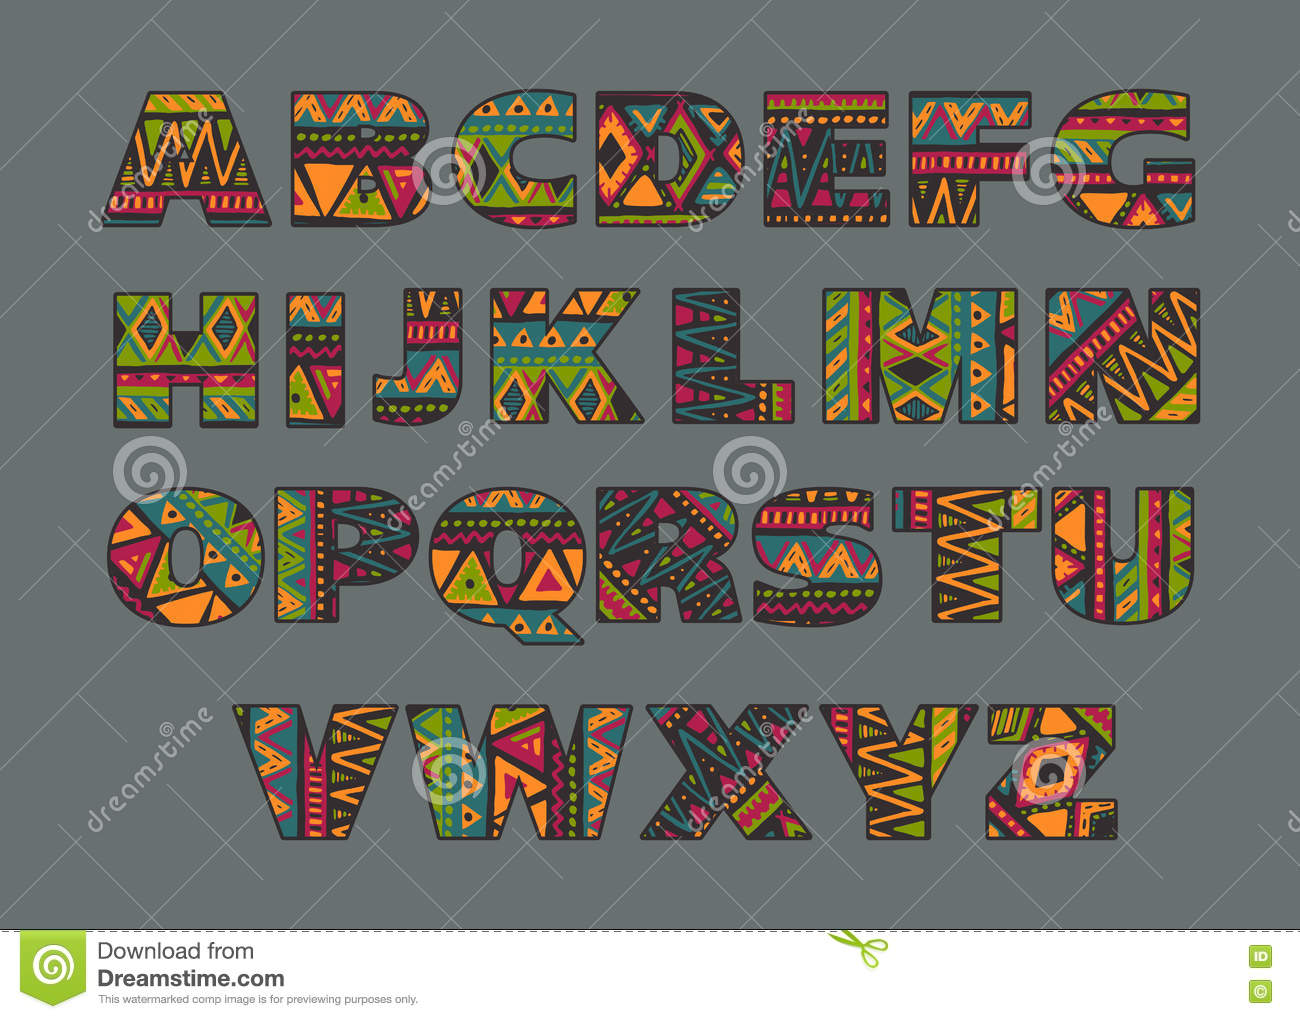 Vector Set Of Ornate Capital Letters With Abstract Ethnic